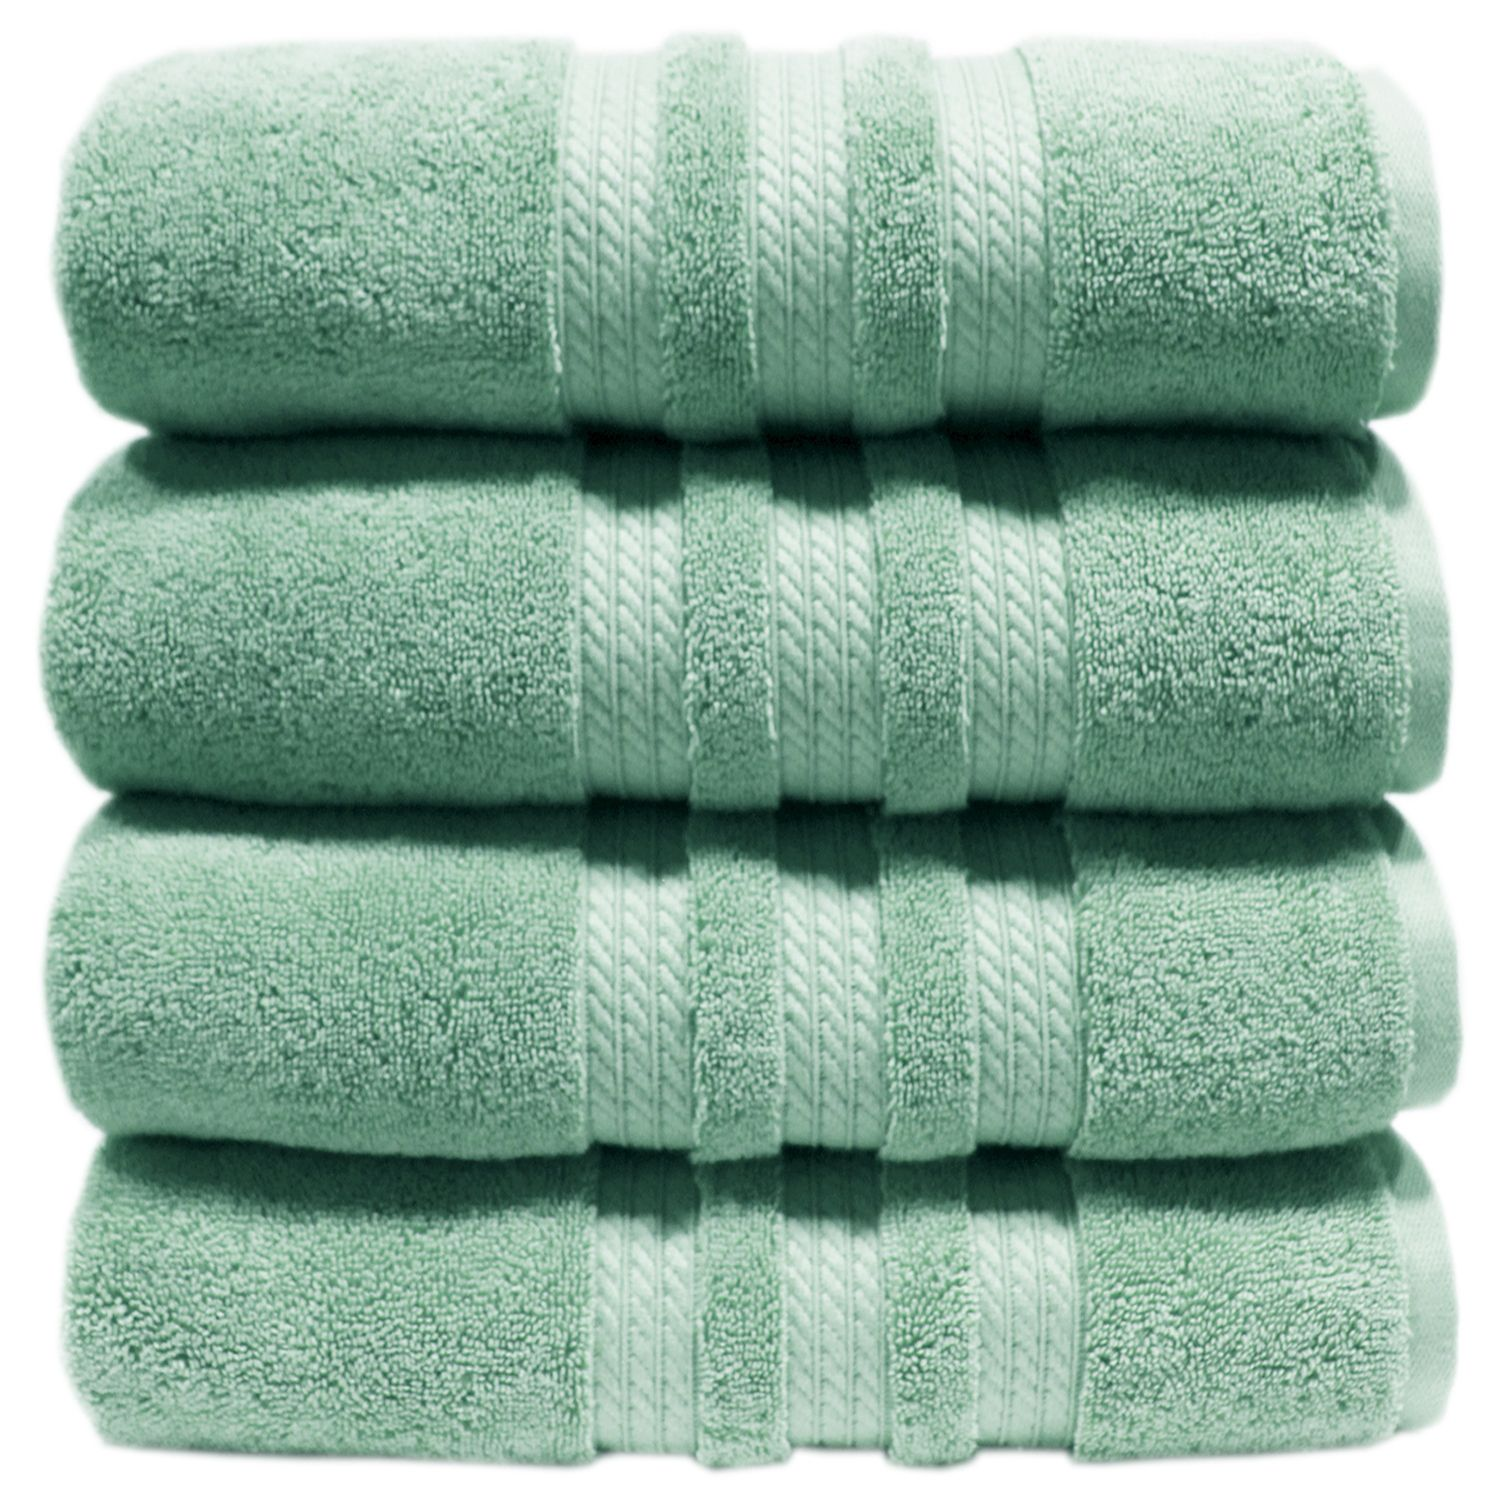 "100% Cotton Luxury Bath Towel - 30"" x 58"" - Light Blue"